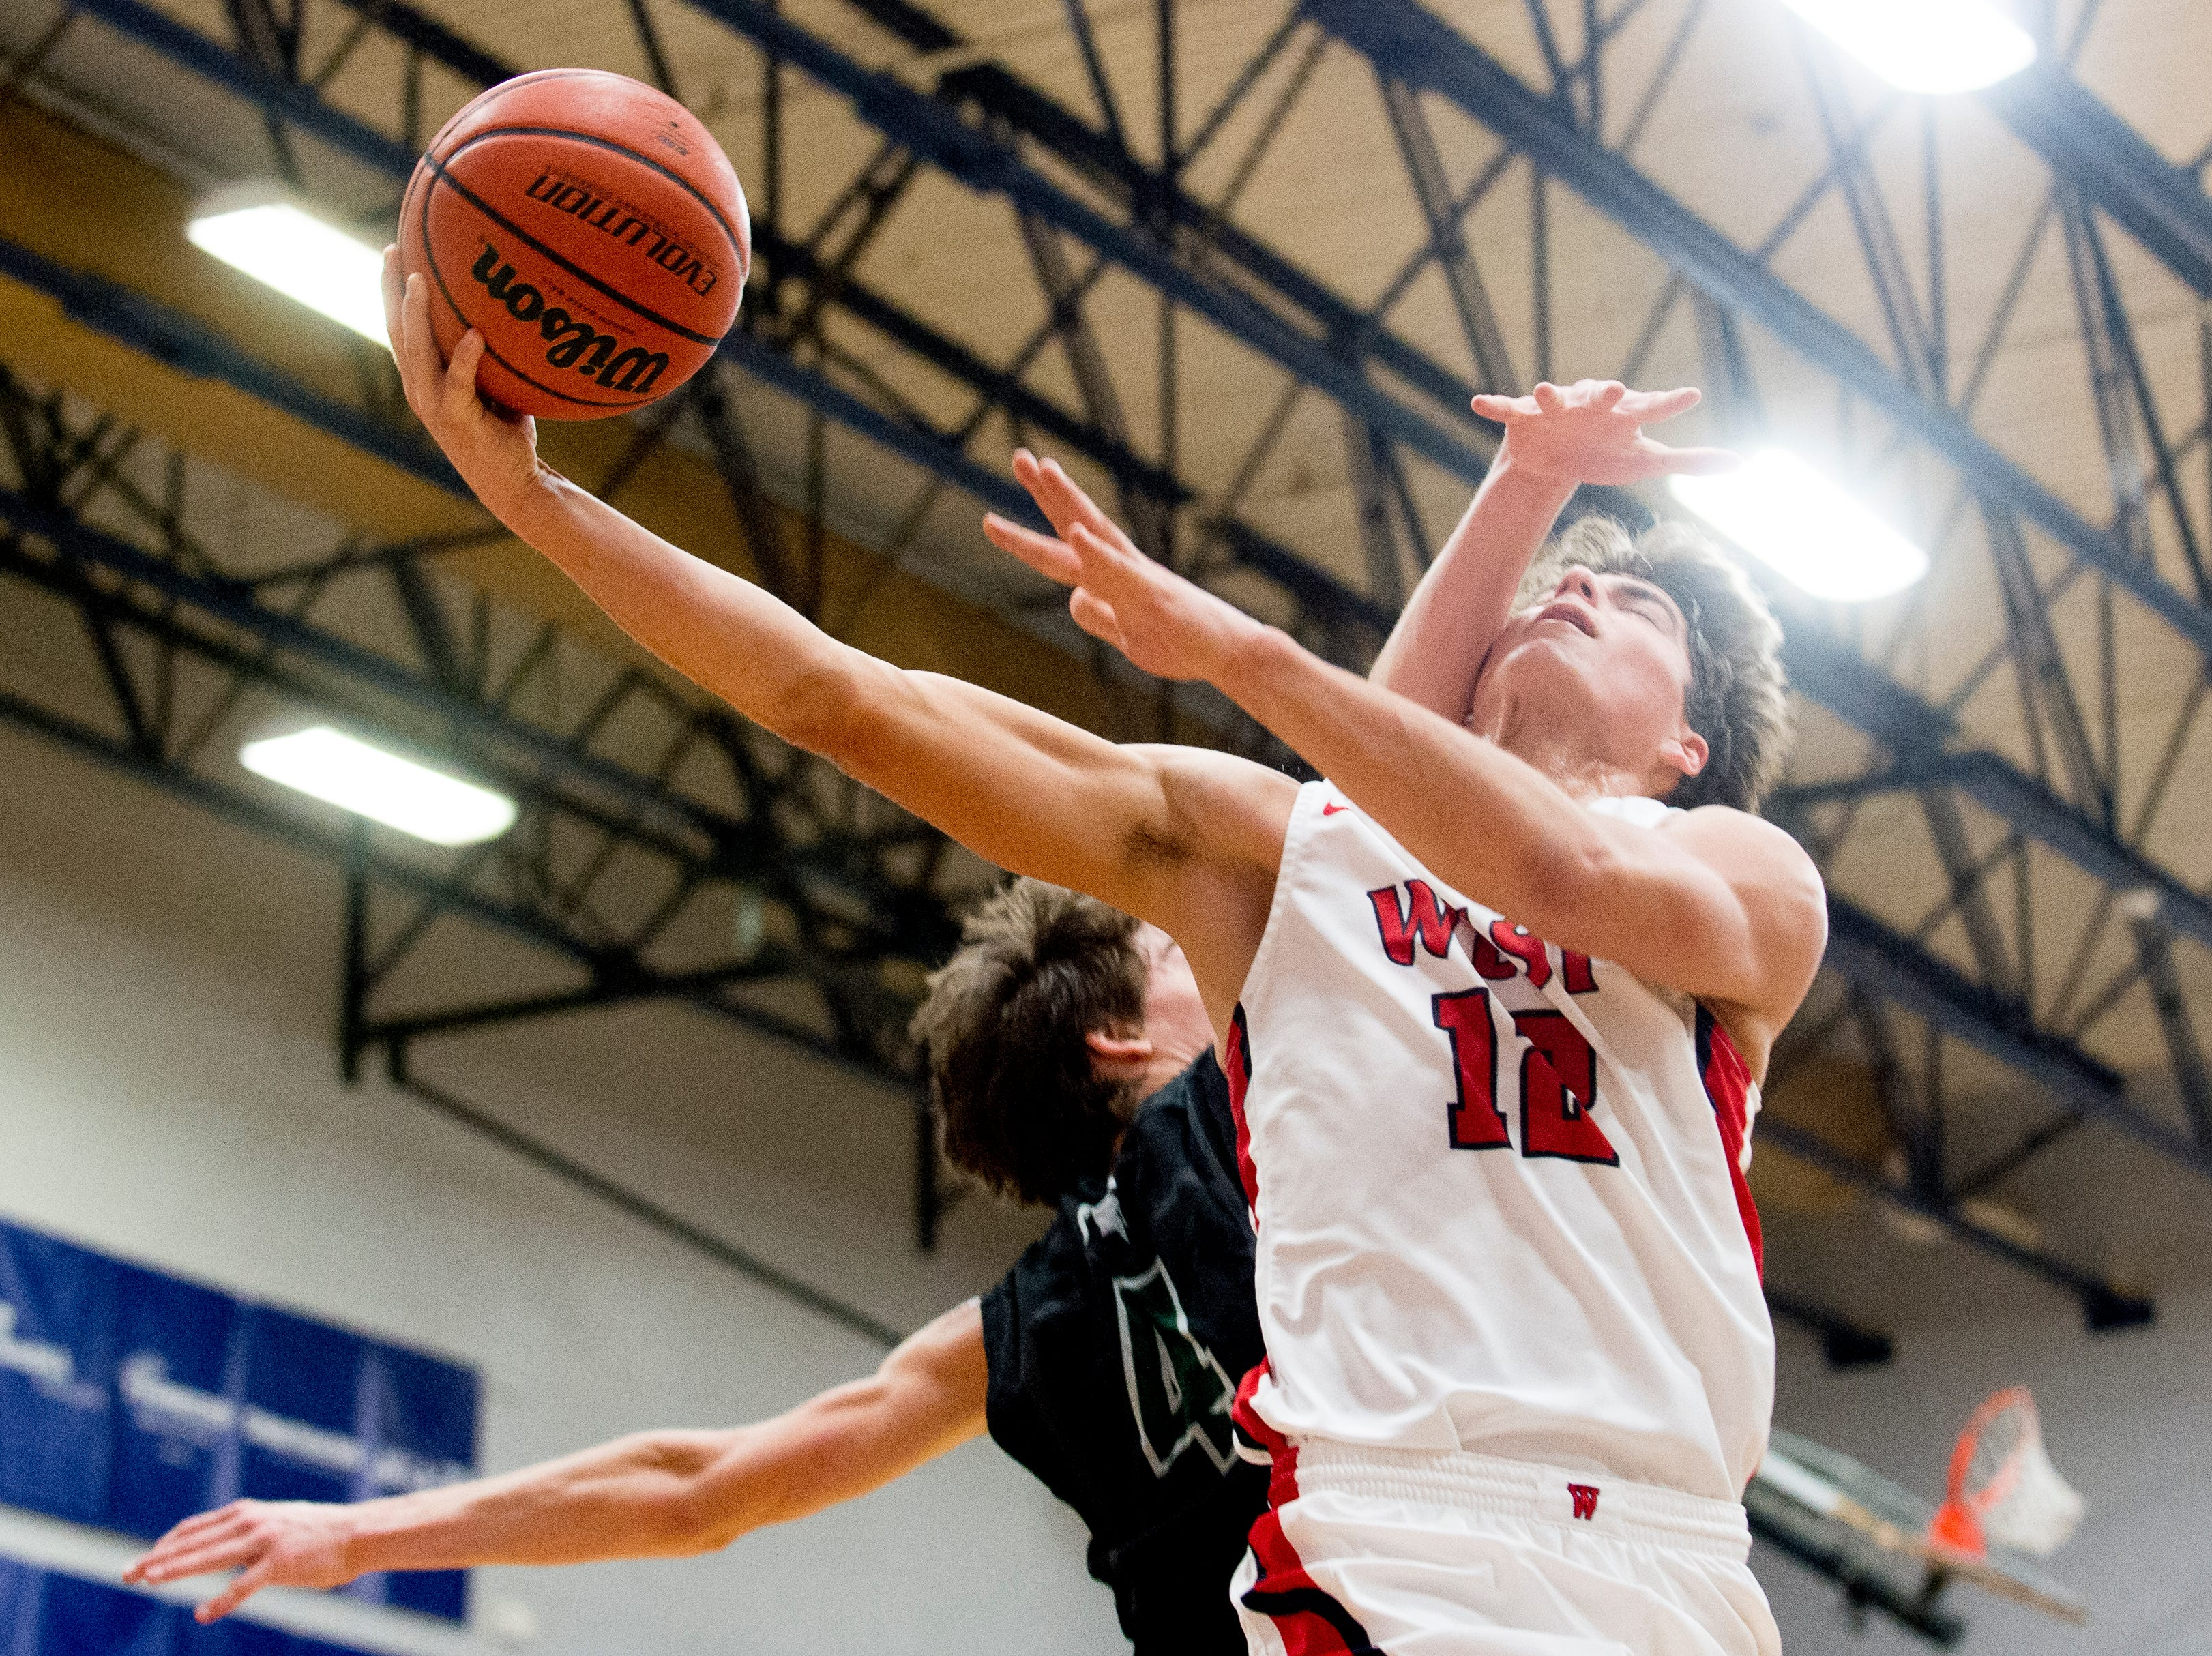 West's Will Eggleston (12) is hit in the face by Webb's Charlie Wynck (4) while going for a layup during a game between West and Webb at West High School in Knoxville, Tennessee on Friday, January 4, 2019.